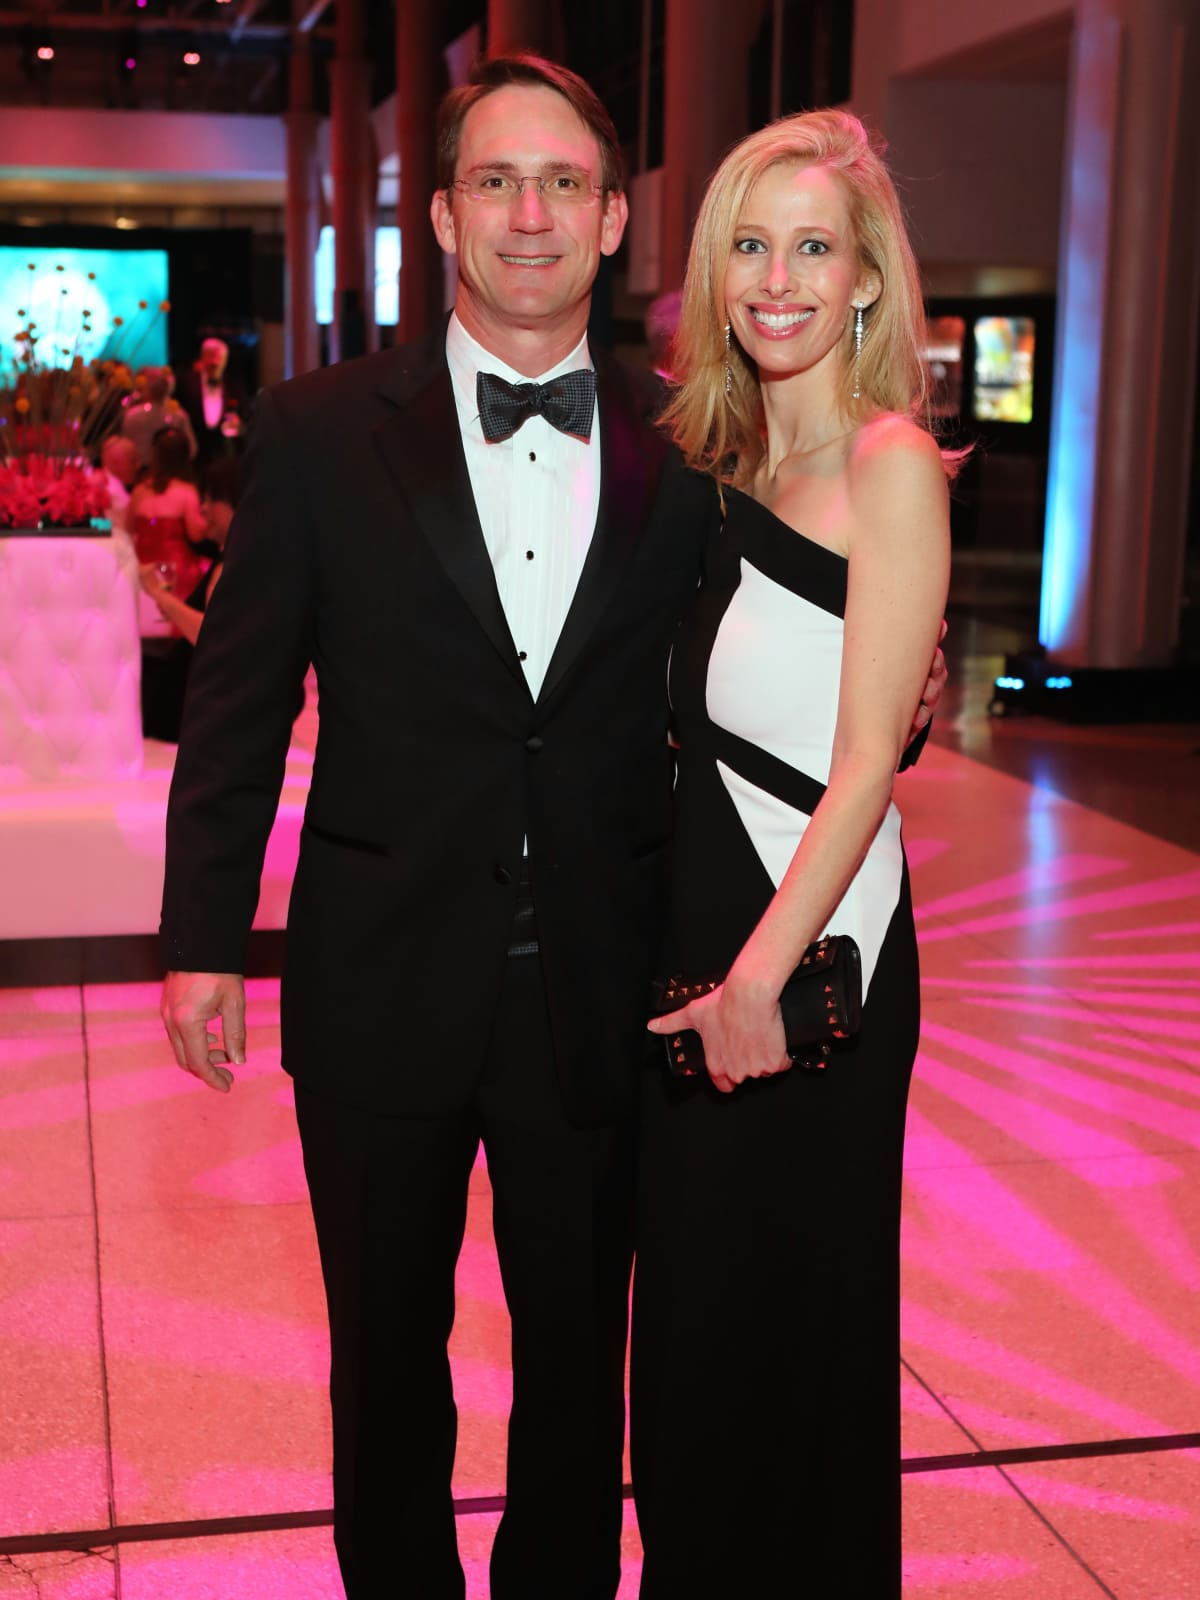 Houston, HMNS Big Bang Ball, March 2017, Curtis Hartman, Amy Hartman.